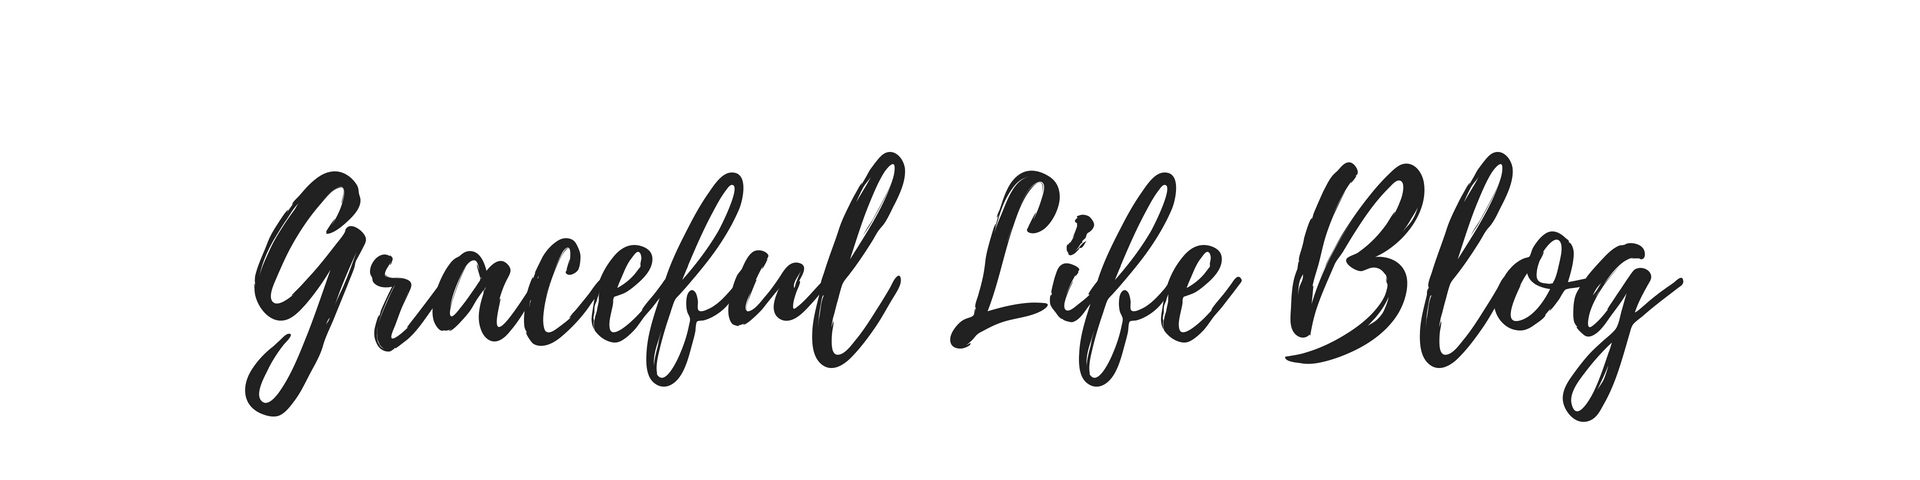 Graceful Life Blog